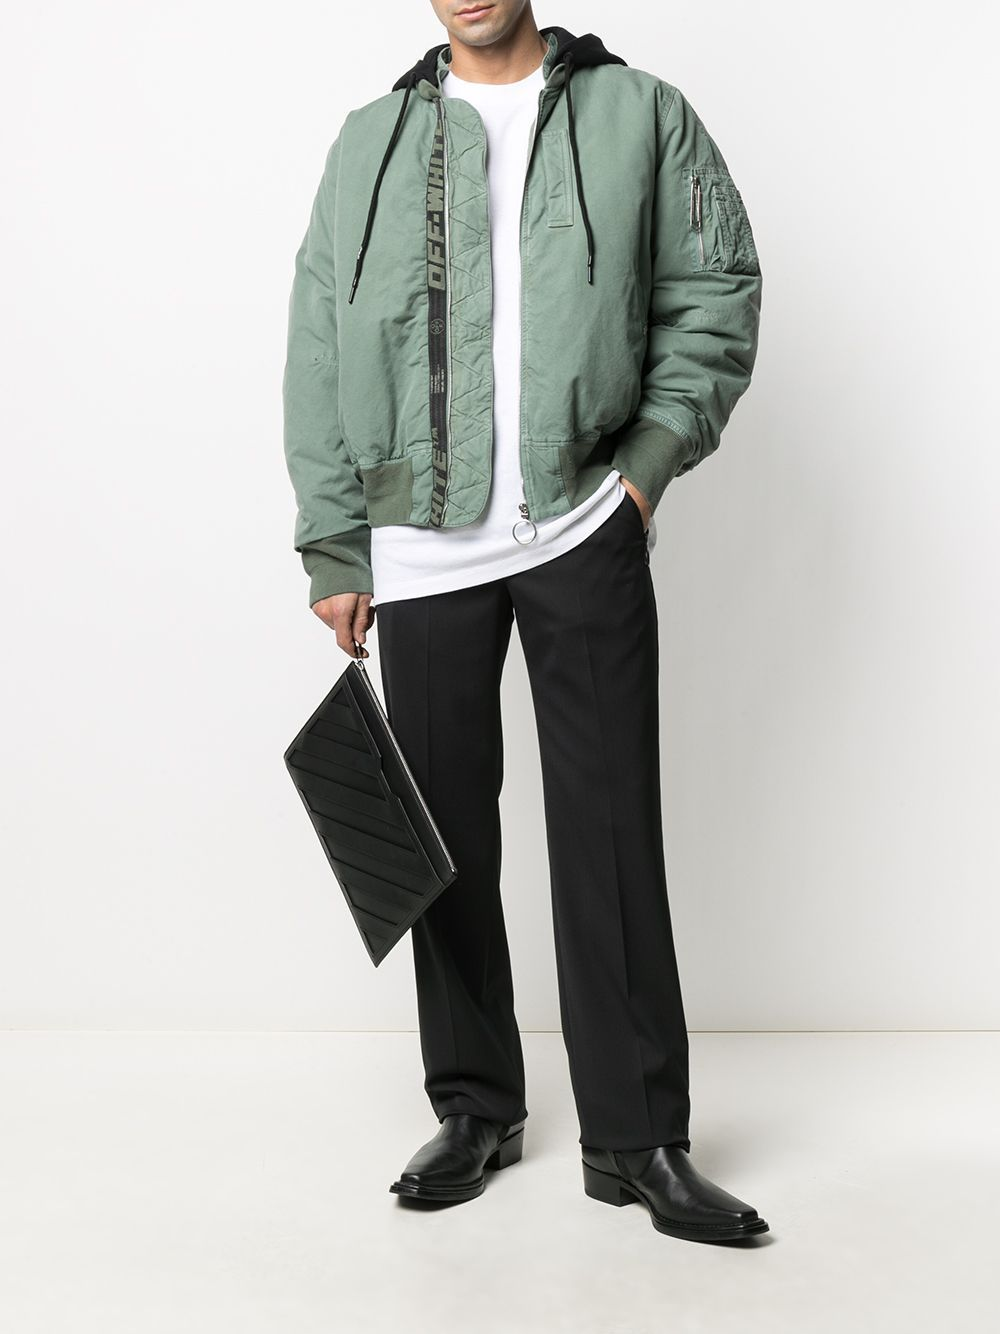 OFF-WHITE Arrow Vintage Bomber Jacket Green - Maison De Fashion